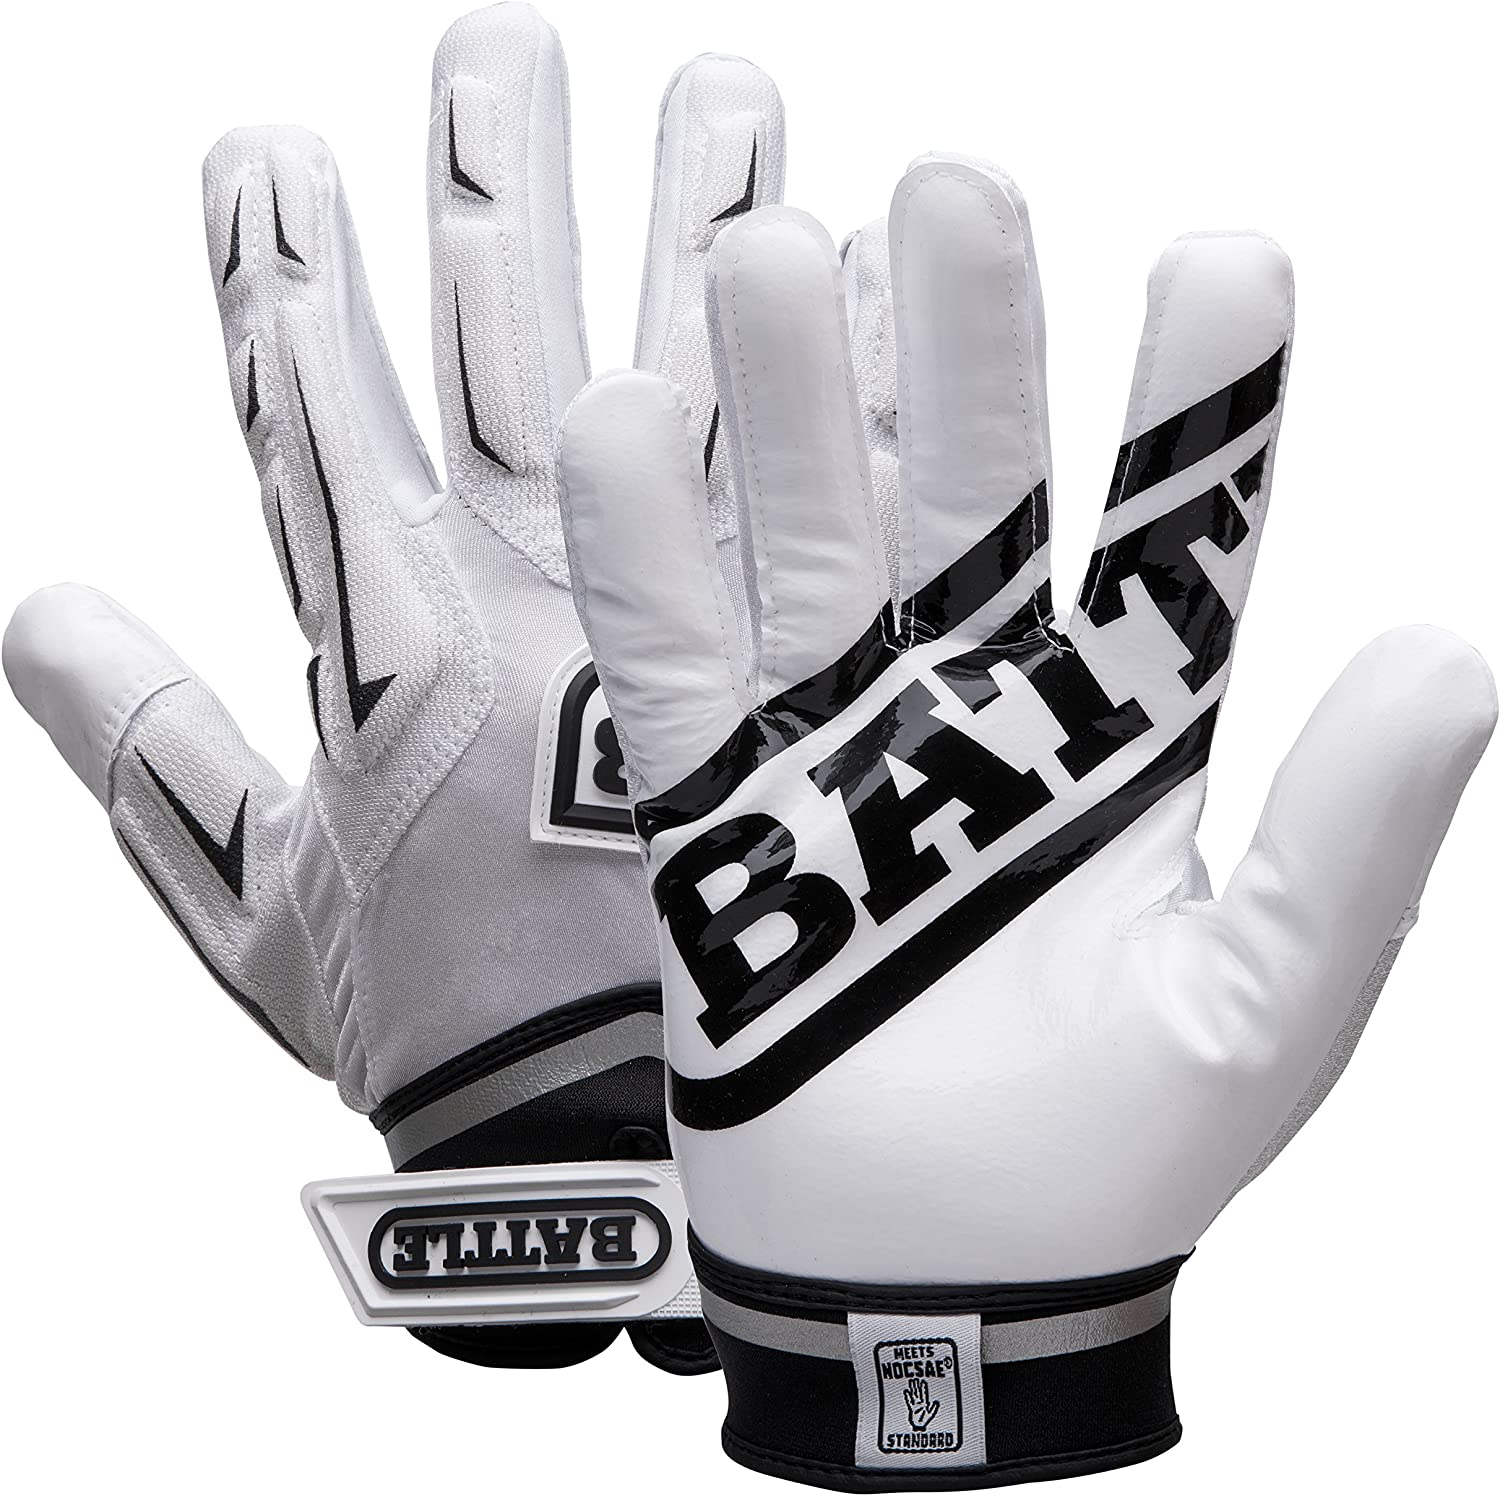 Battle Youth Complete Free Shipping Hybrid Gloves It is very popular